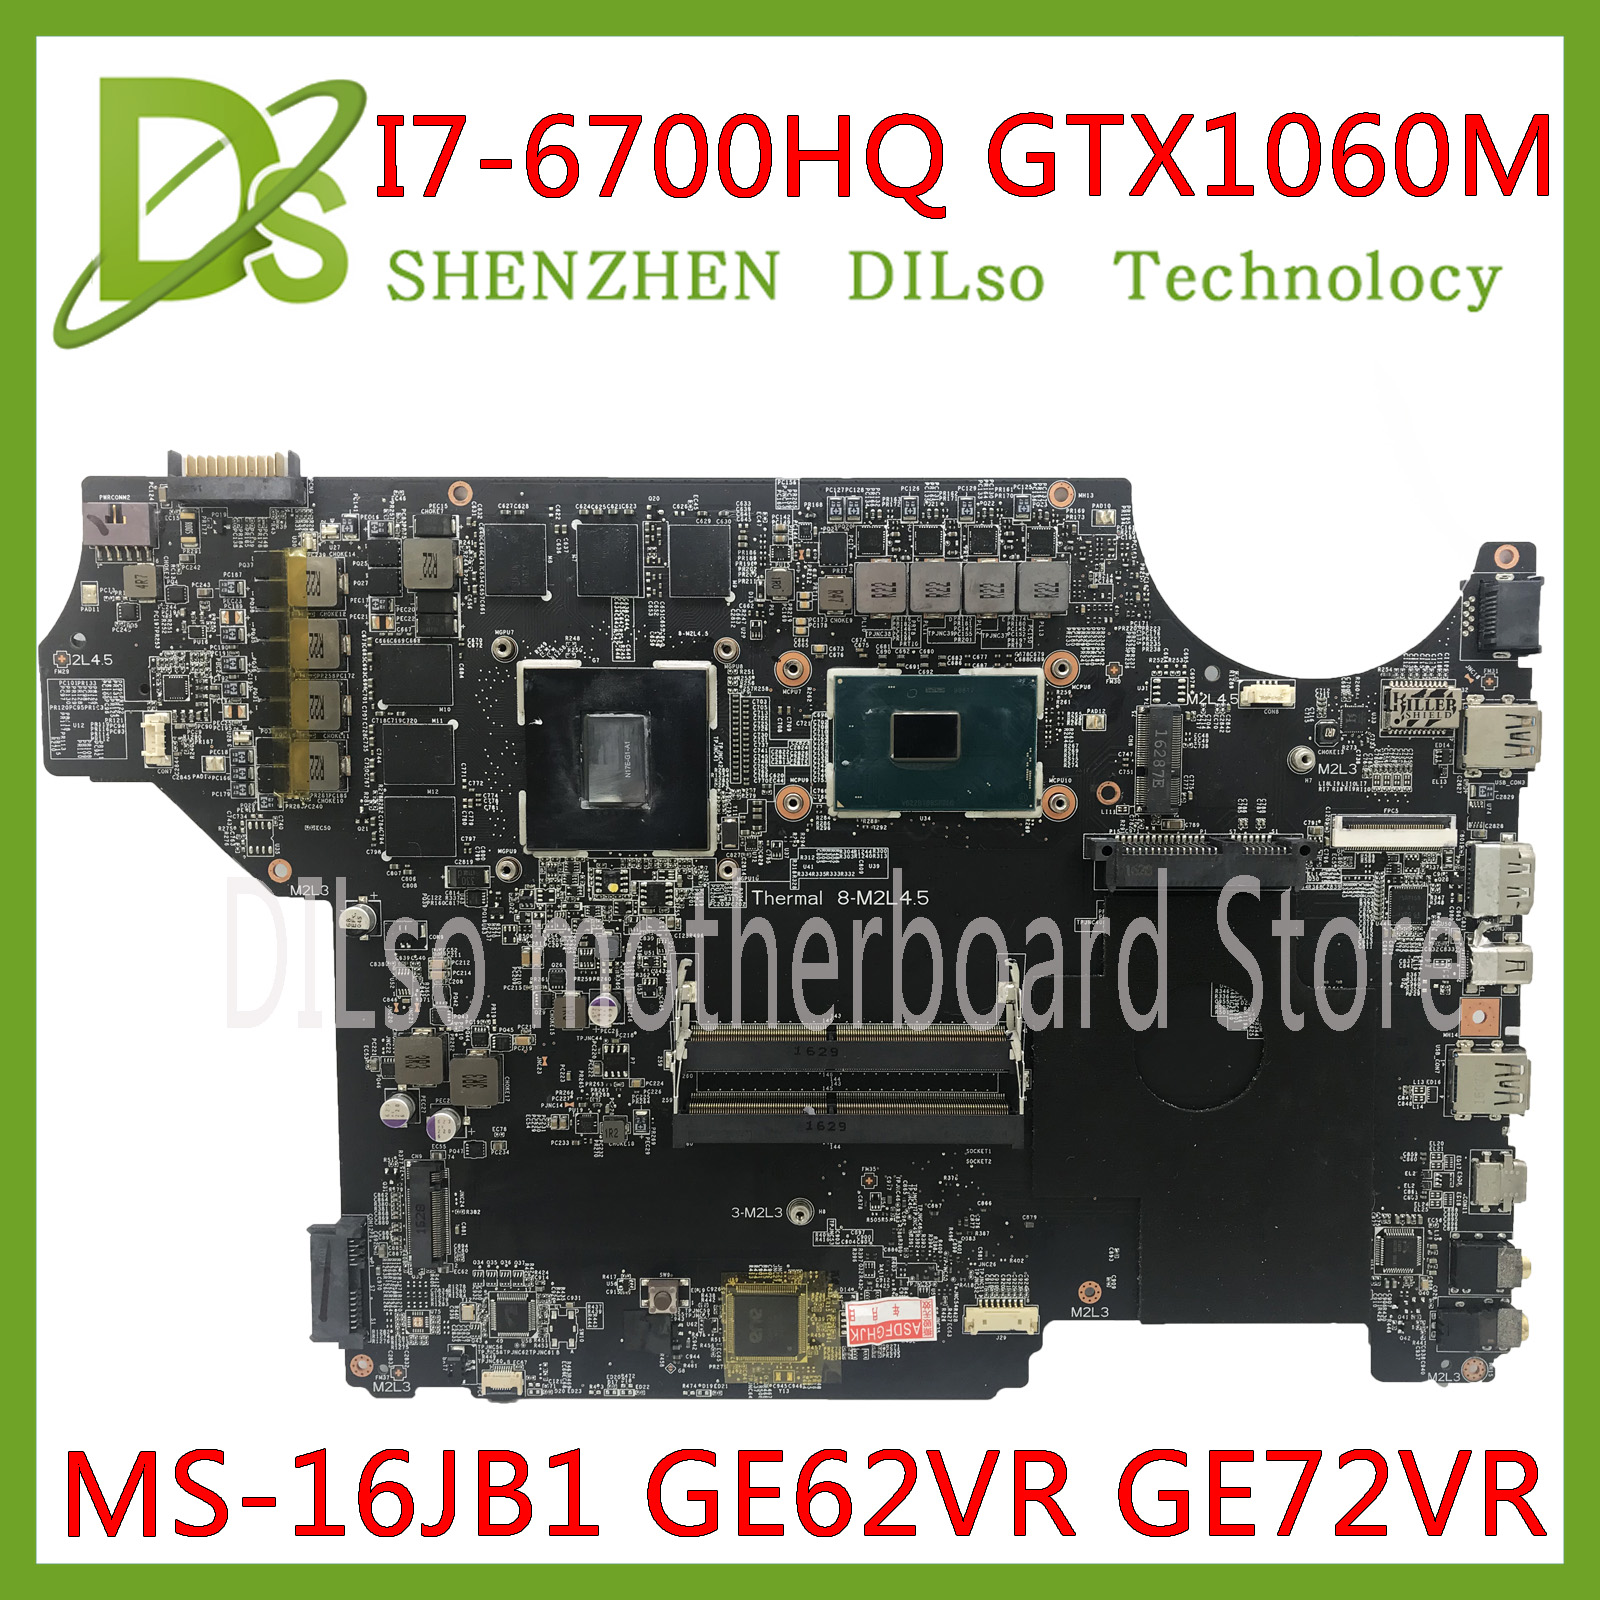 KEFU MS-16JB1 motherboard for MSI GE62VR GE72VR notebook motherboard CPU <font><b>i7</b></font> <font><b>6700HQ</b></font> GPU GTX1060M-6GB DDR4 100% Tested original image